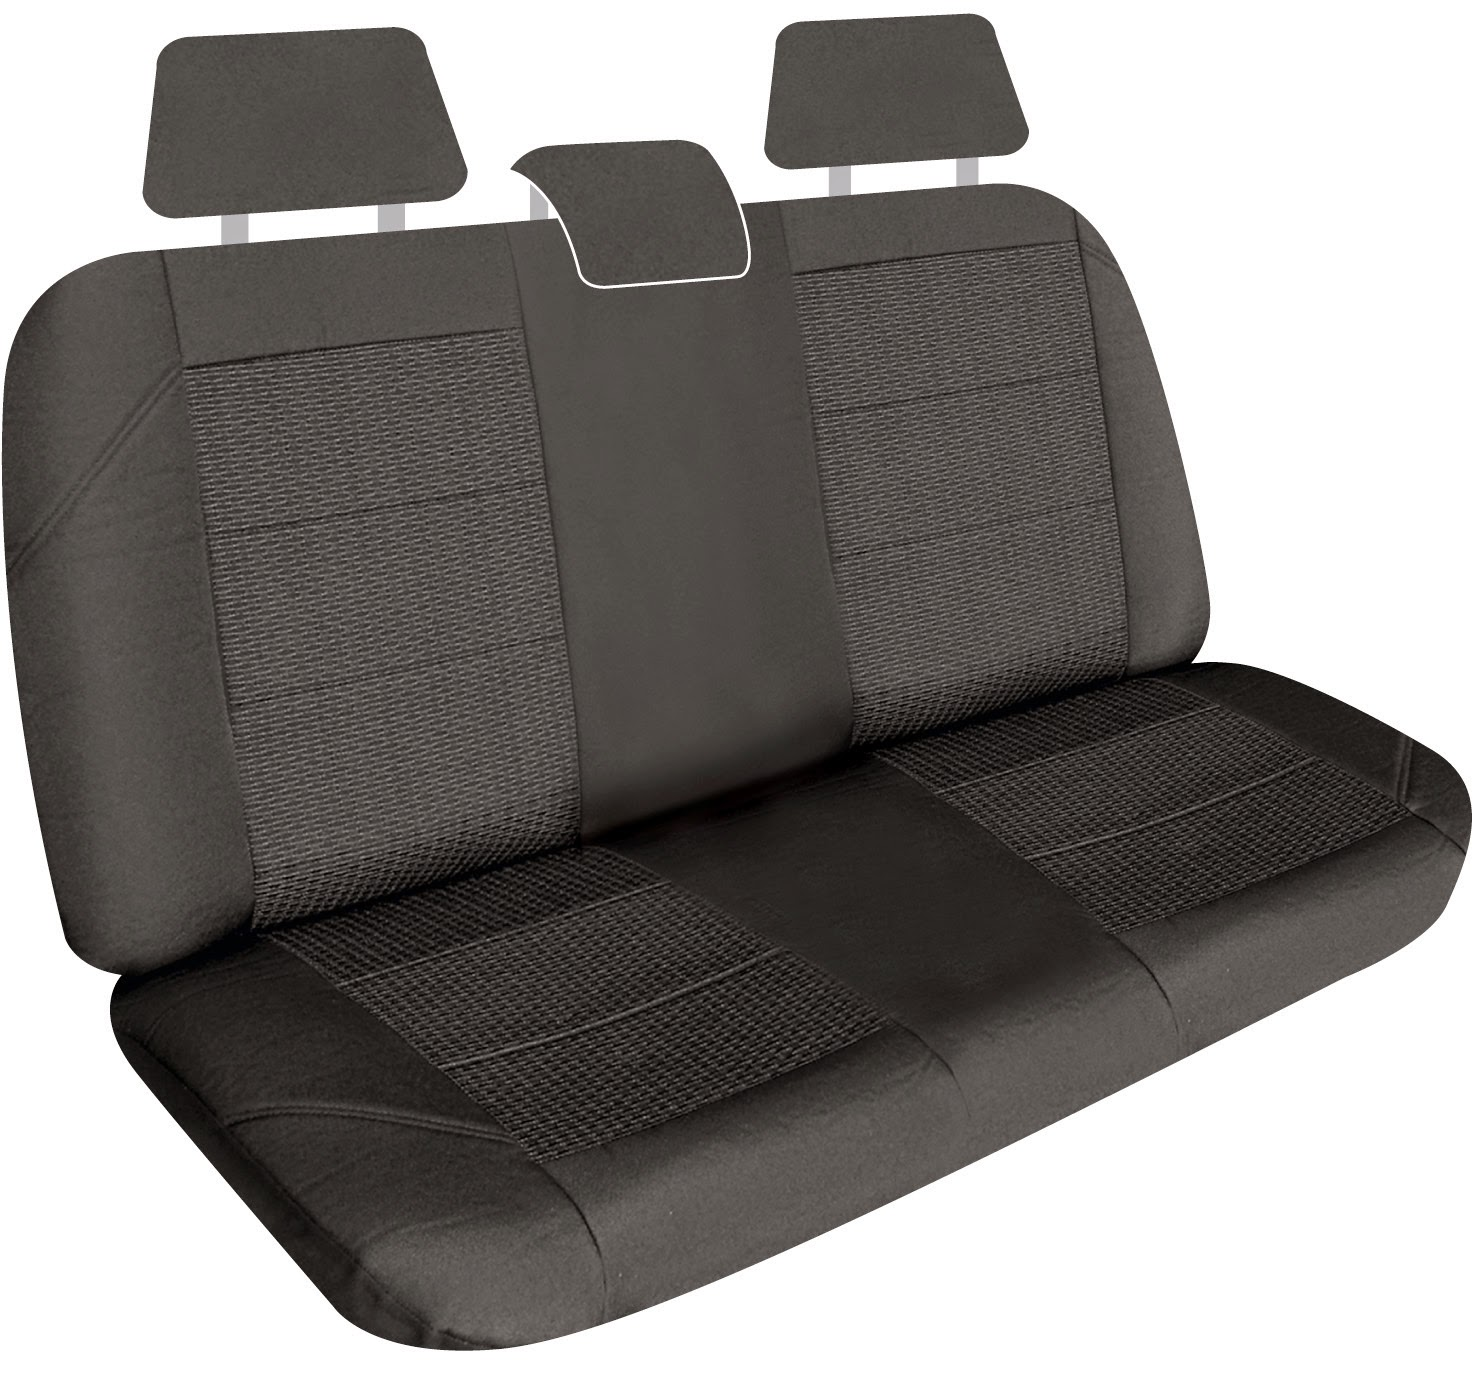 Back seat covers Elite gry